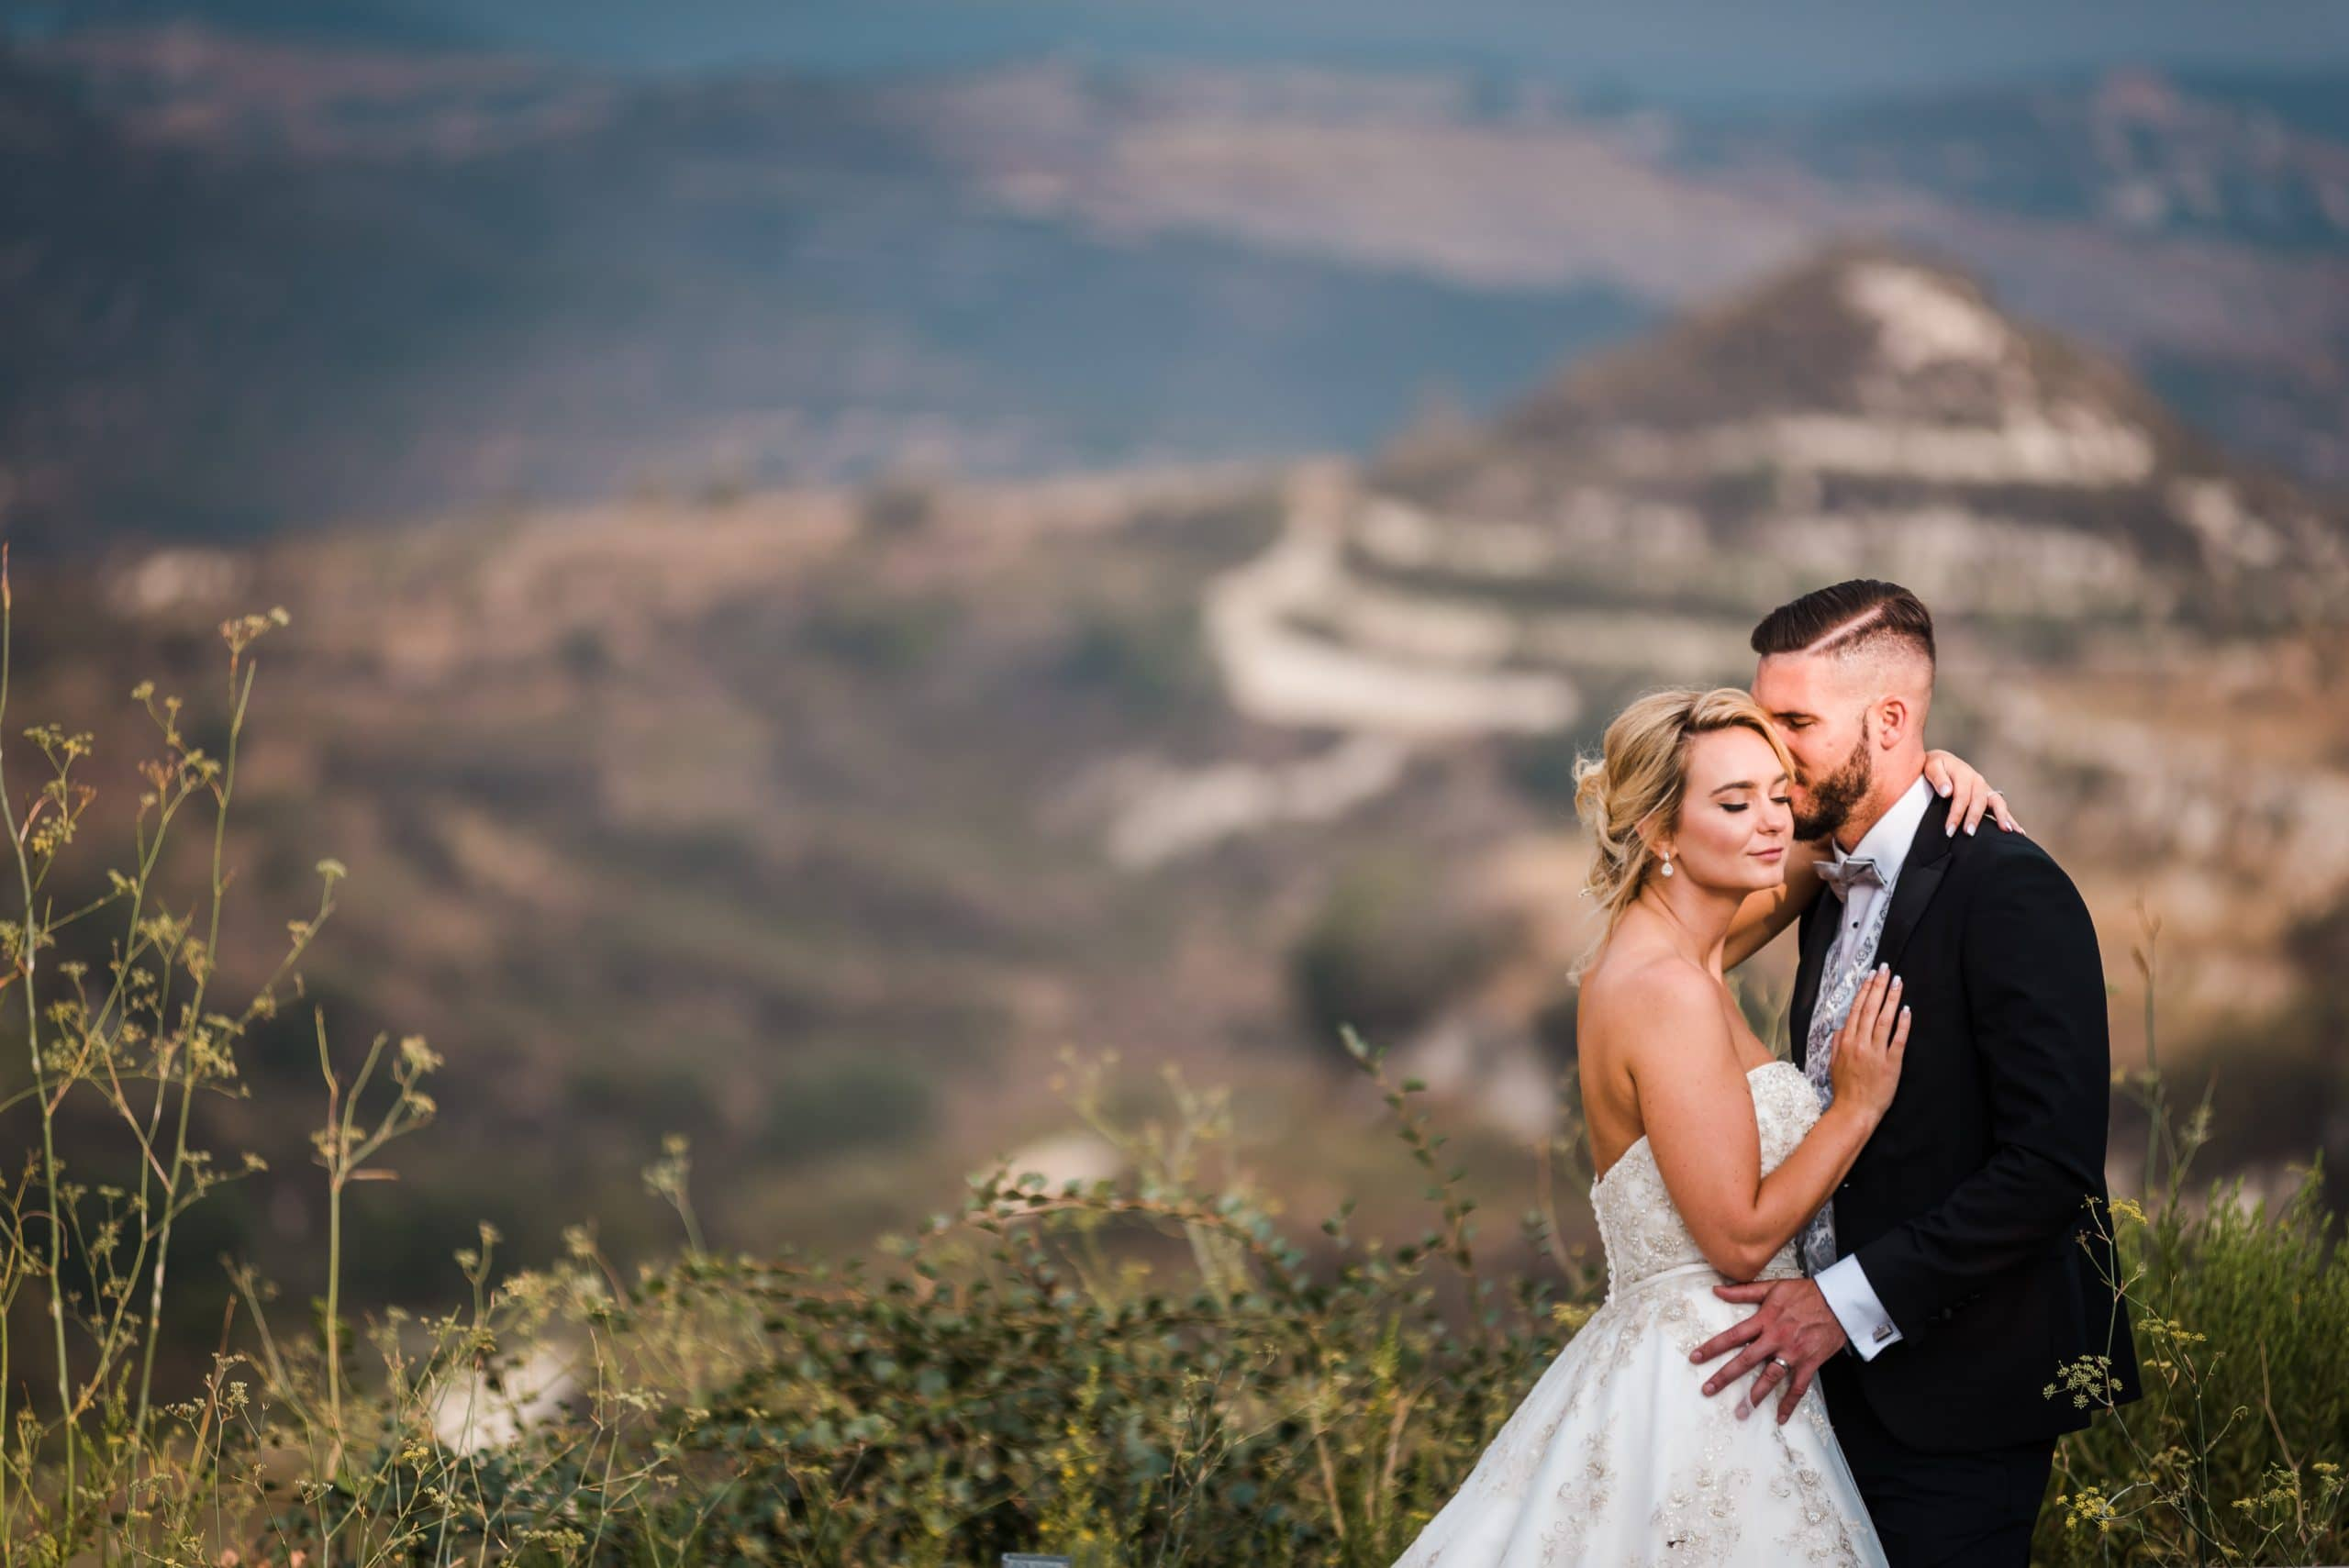 Wedding photography in Paphos - Bride and Groom hugging